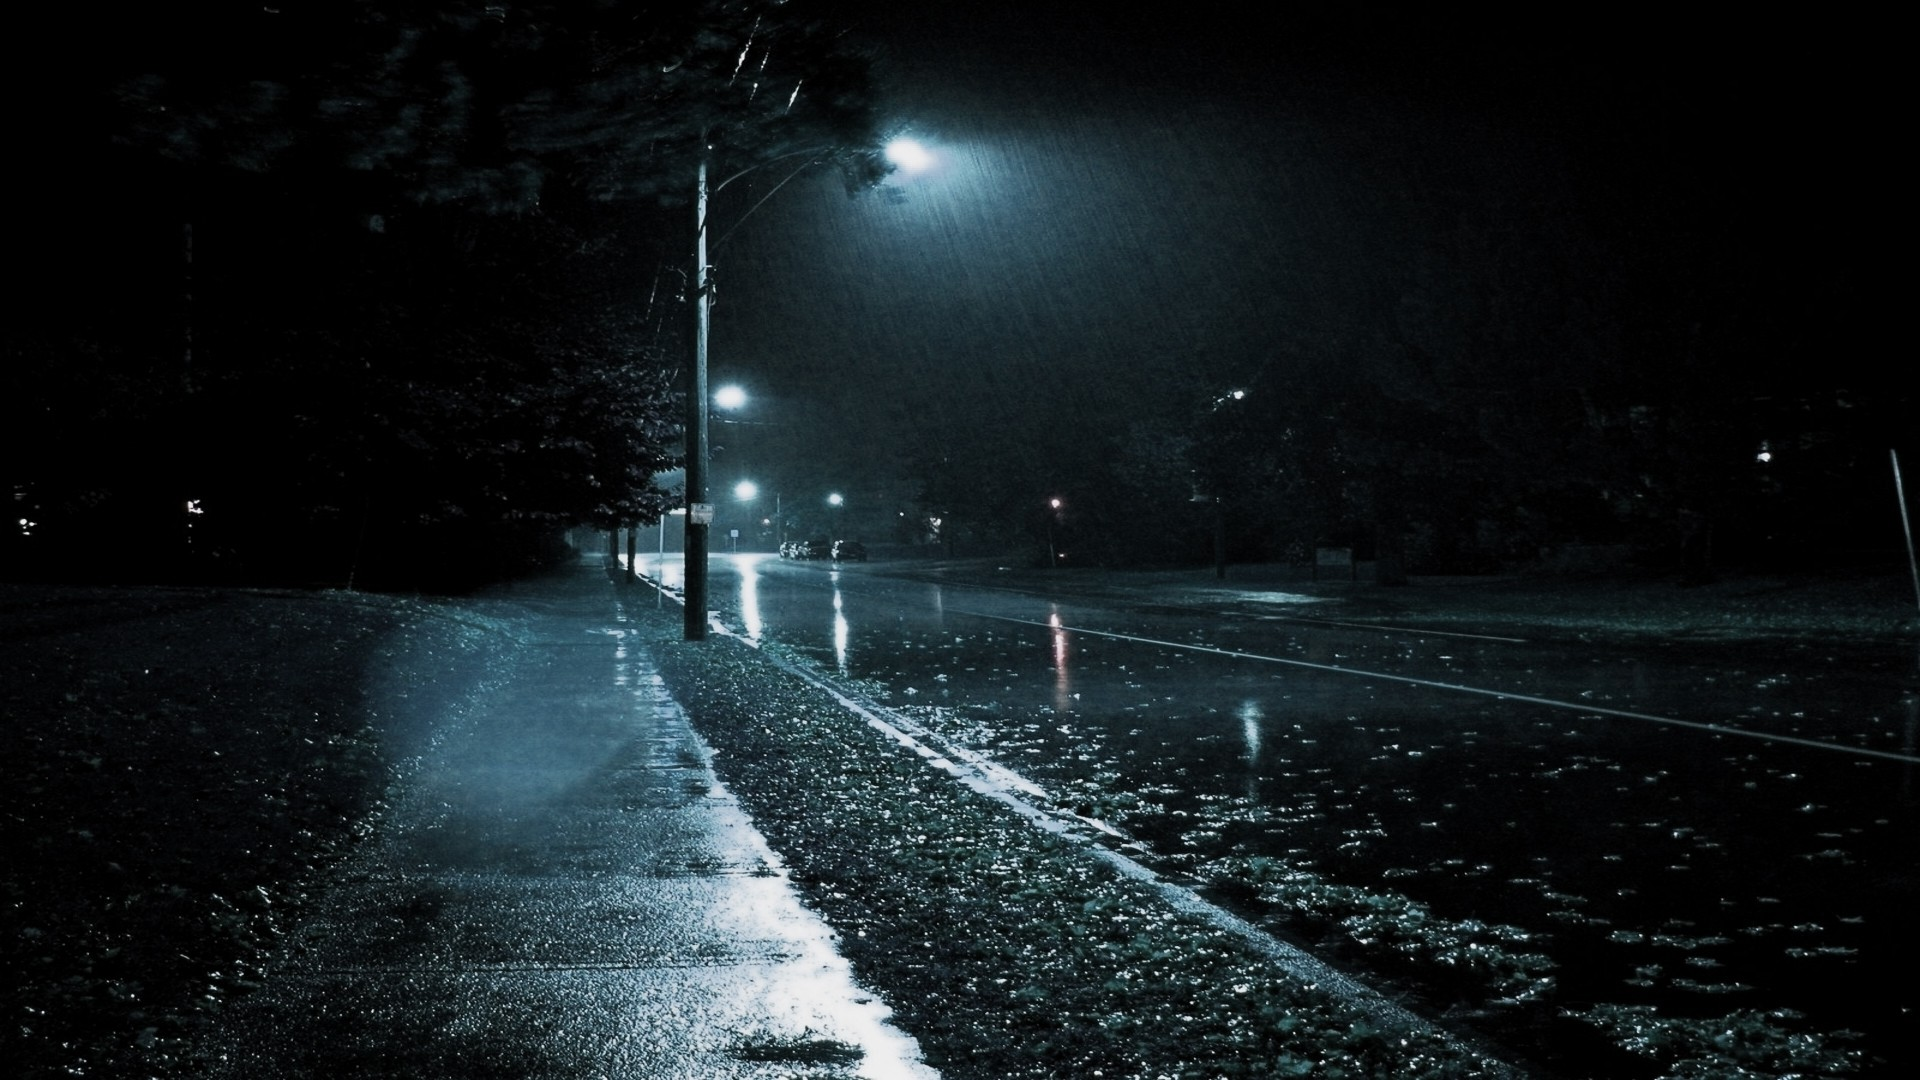 is under the rainy wallpapers category of hd wallpapers rainy 1920x1080